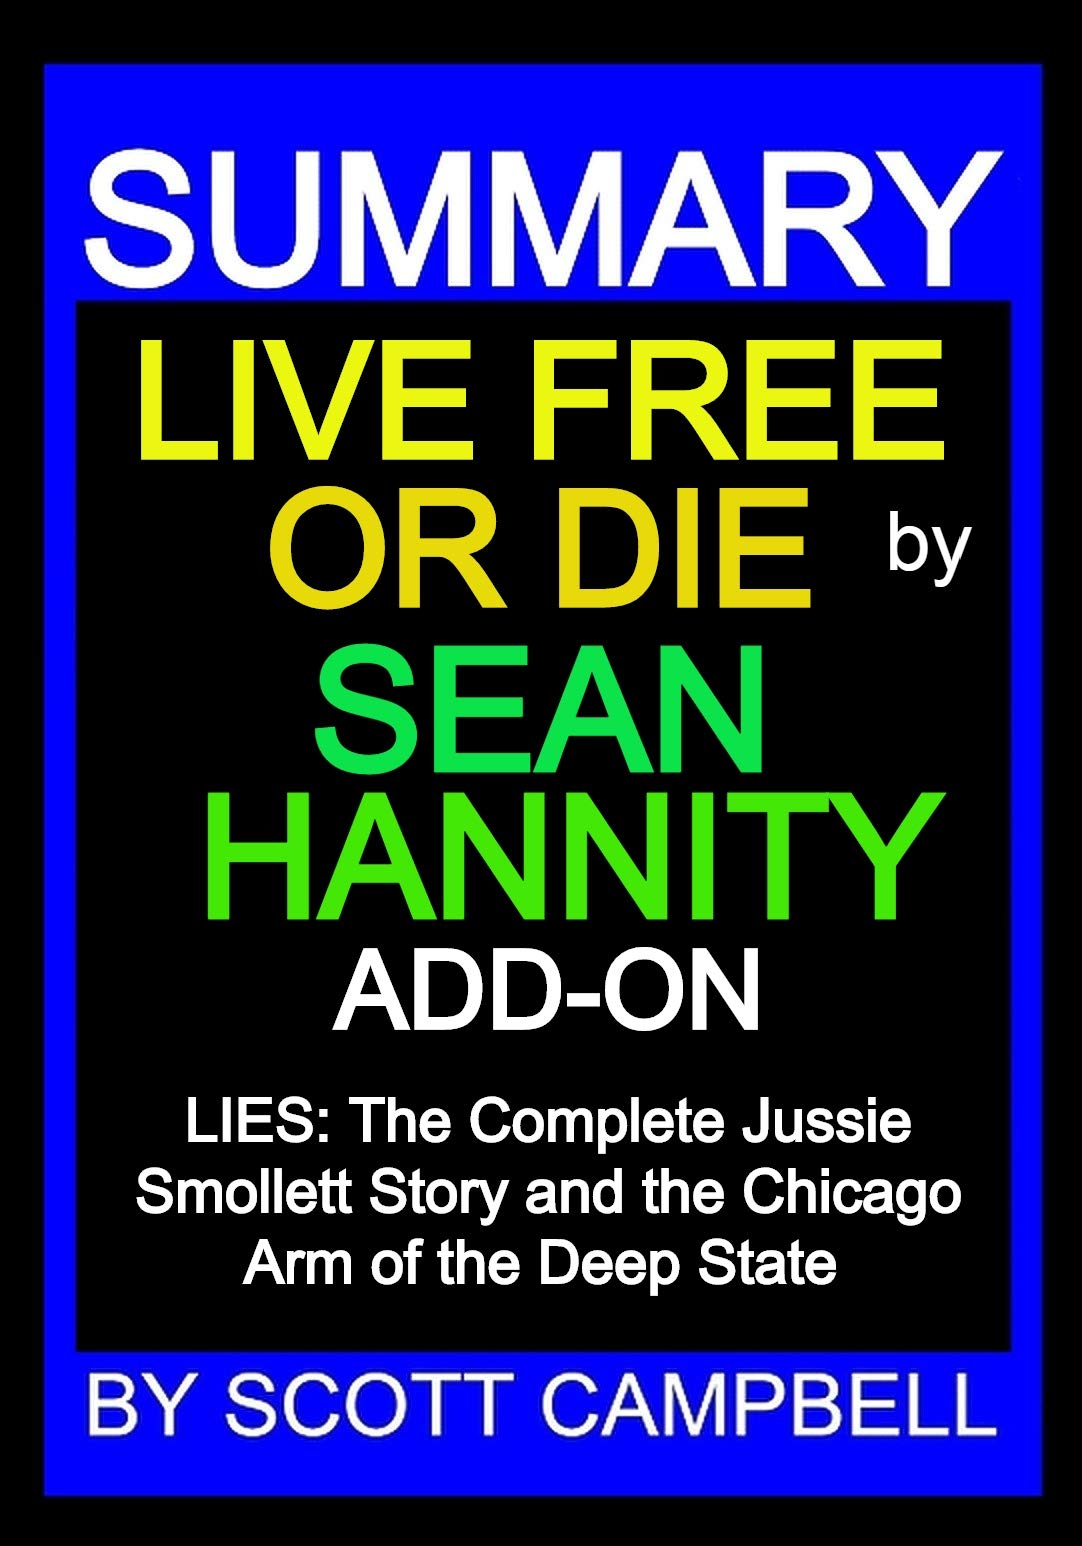 SUMMARY: LIVE FREE OR DIE BY SEAN HANNITY: ADD-ON: LIES: The Complete Jussie Smollett Story and the Chicago Arm of the Deep State (BEST SELLER SUMMARY AND ANALYSIS Book 9)